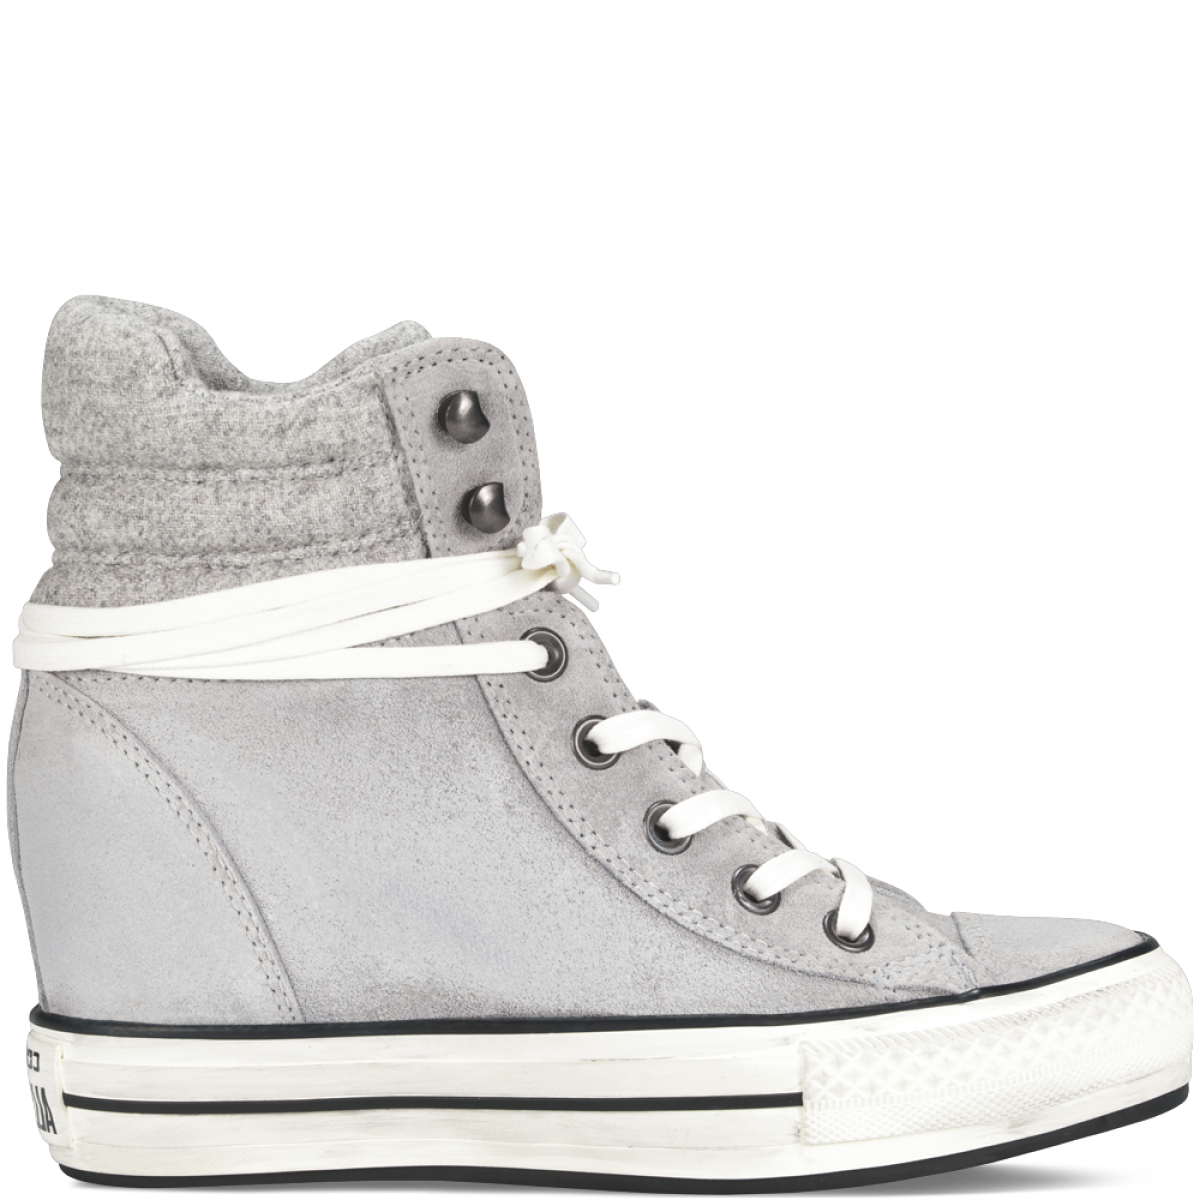 converse all star bianche zeppa